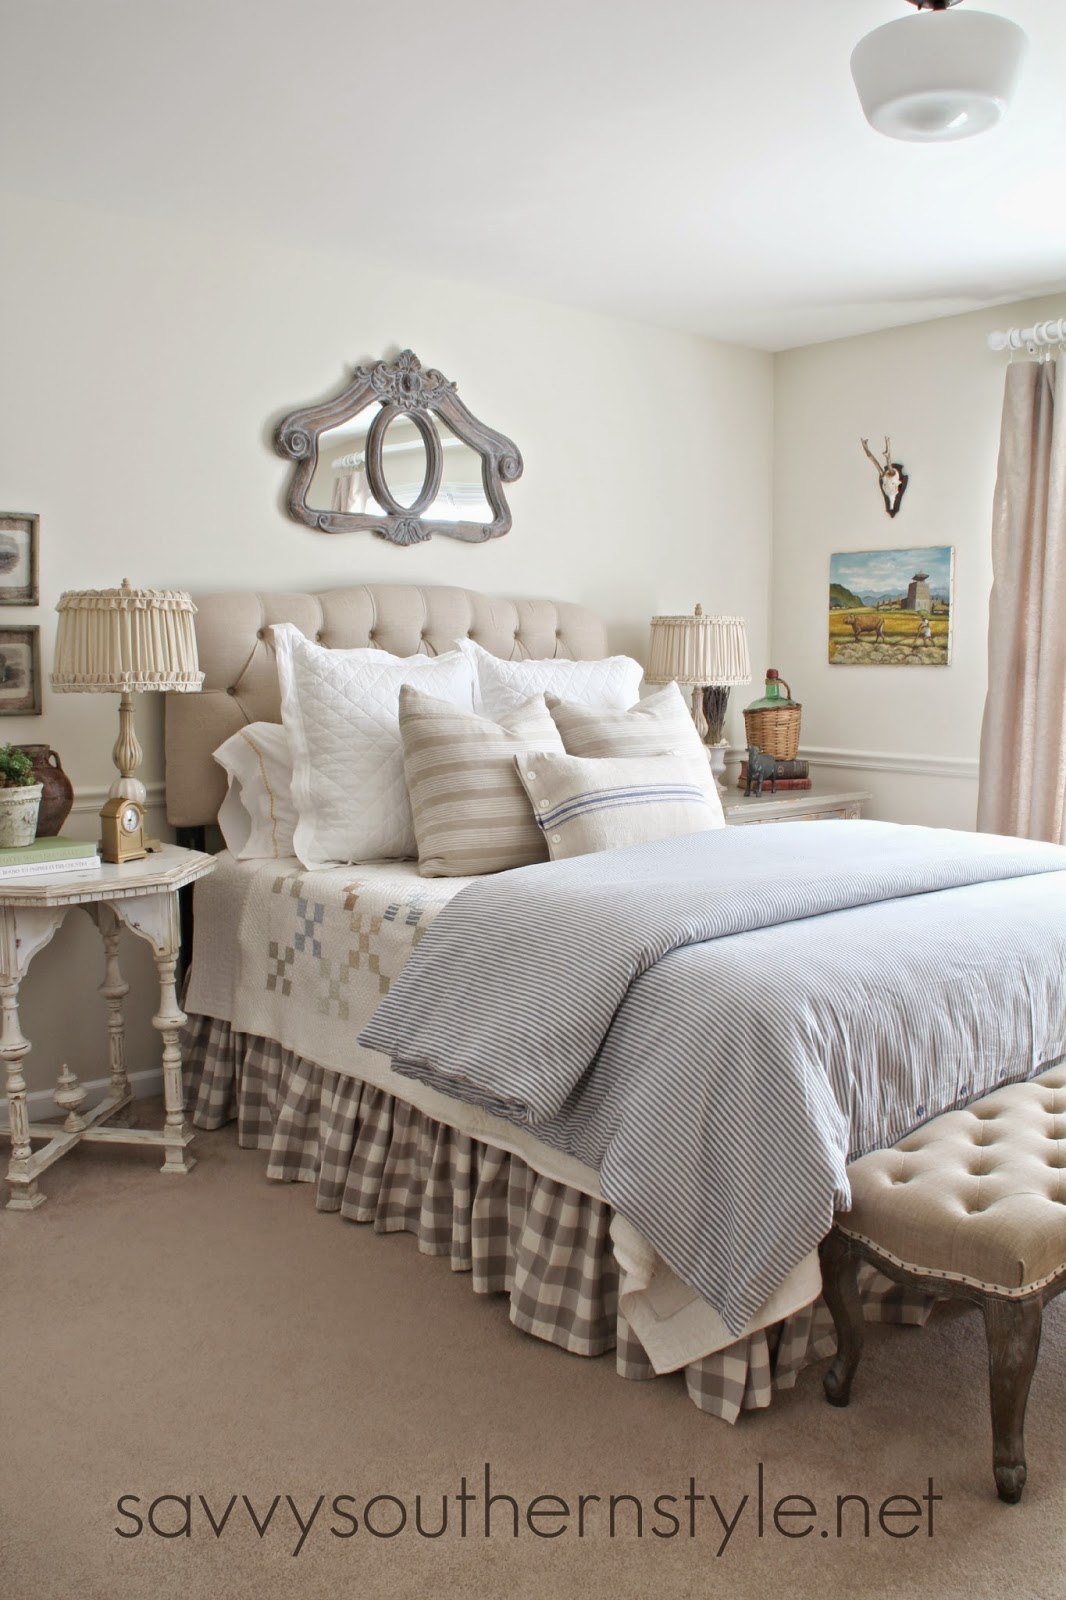 Savvy southern style the tufted bench for Southern style bedroom